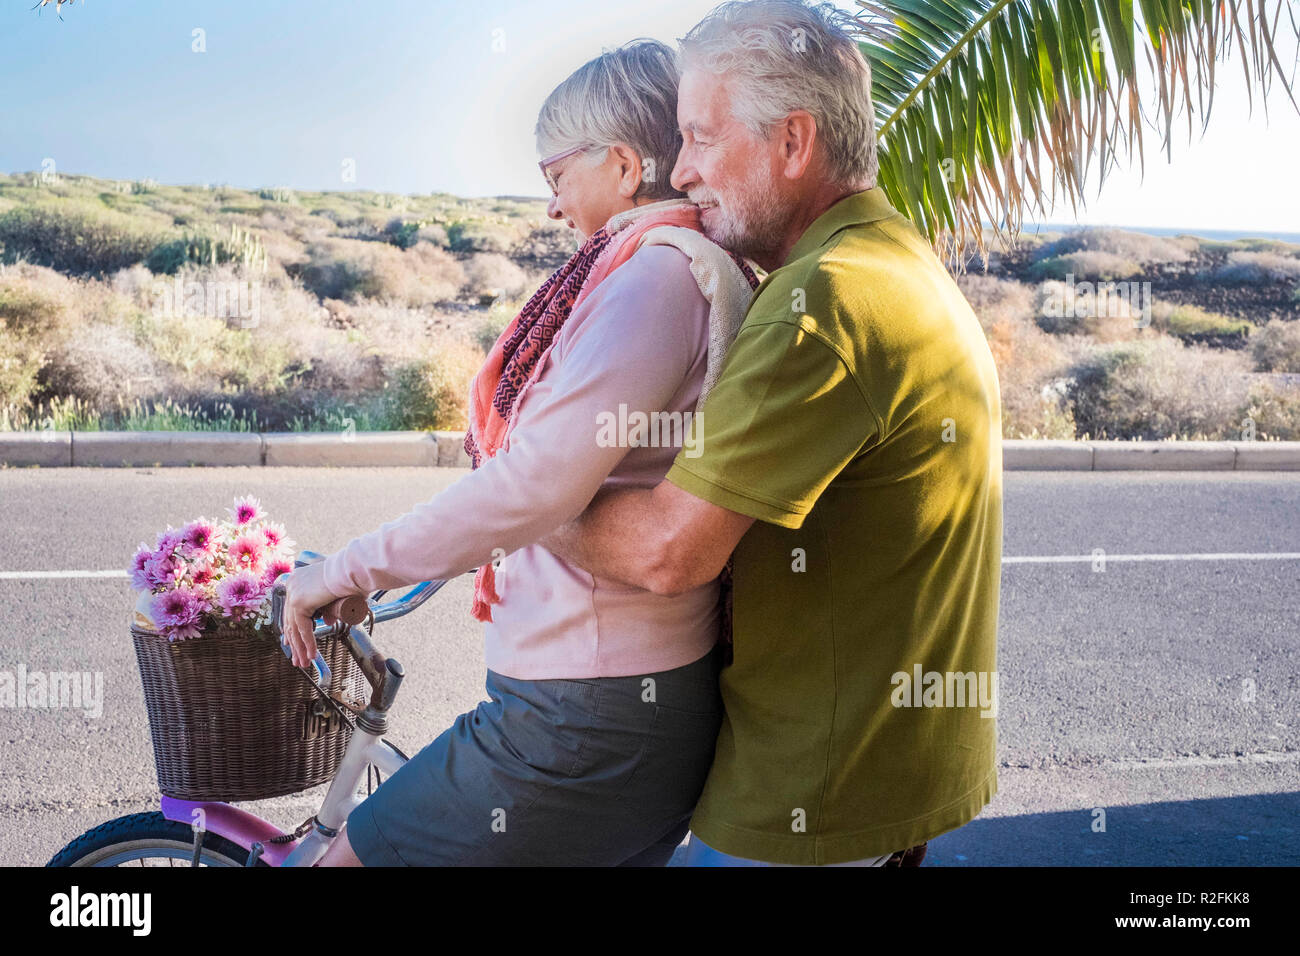 nice and cute couple of adults models playing on the same bike outdoor. leisure activity for happy retired people on holiday in tropical place near the ocean. tenerife vacation concept and smiling people with palm tree - Stock Image